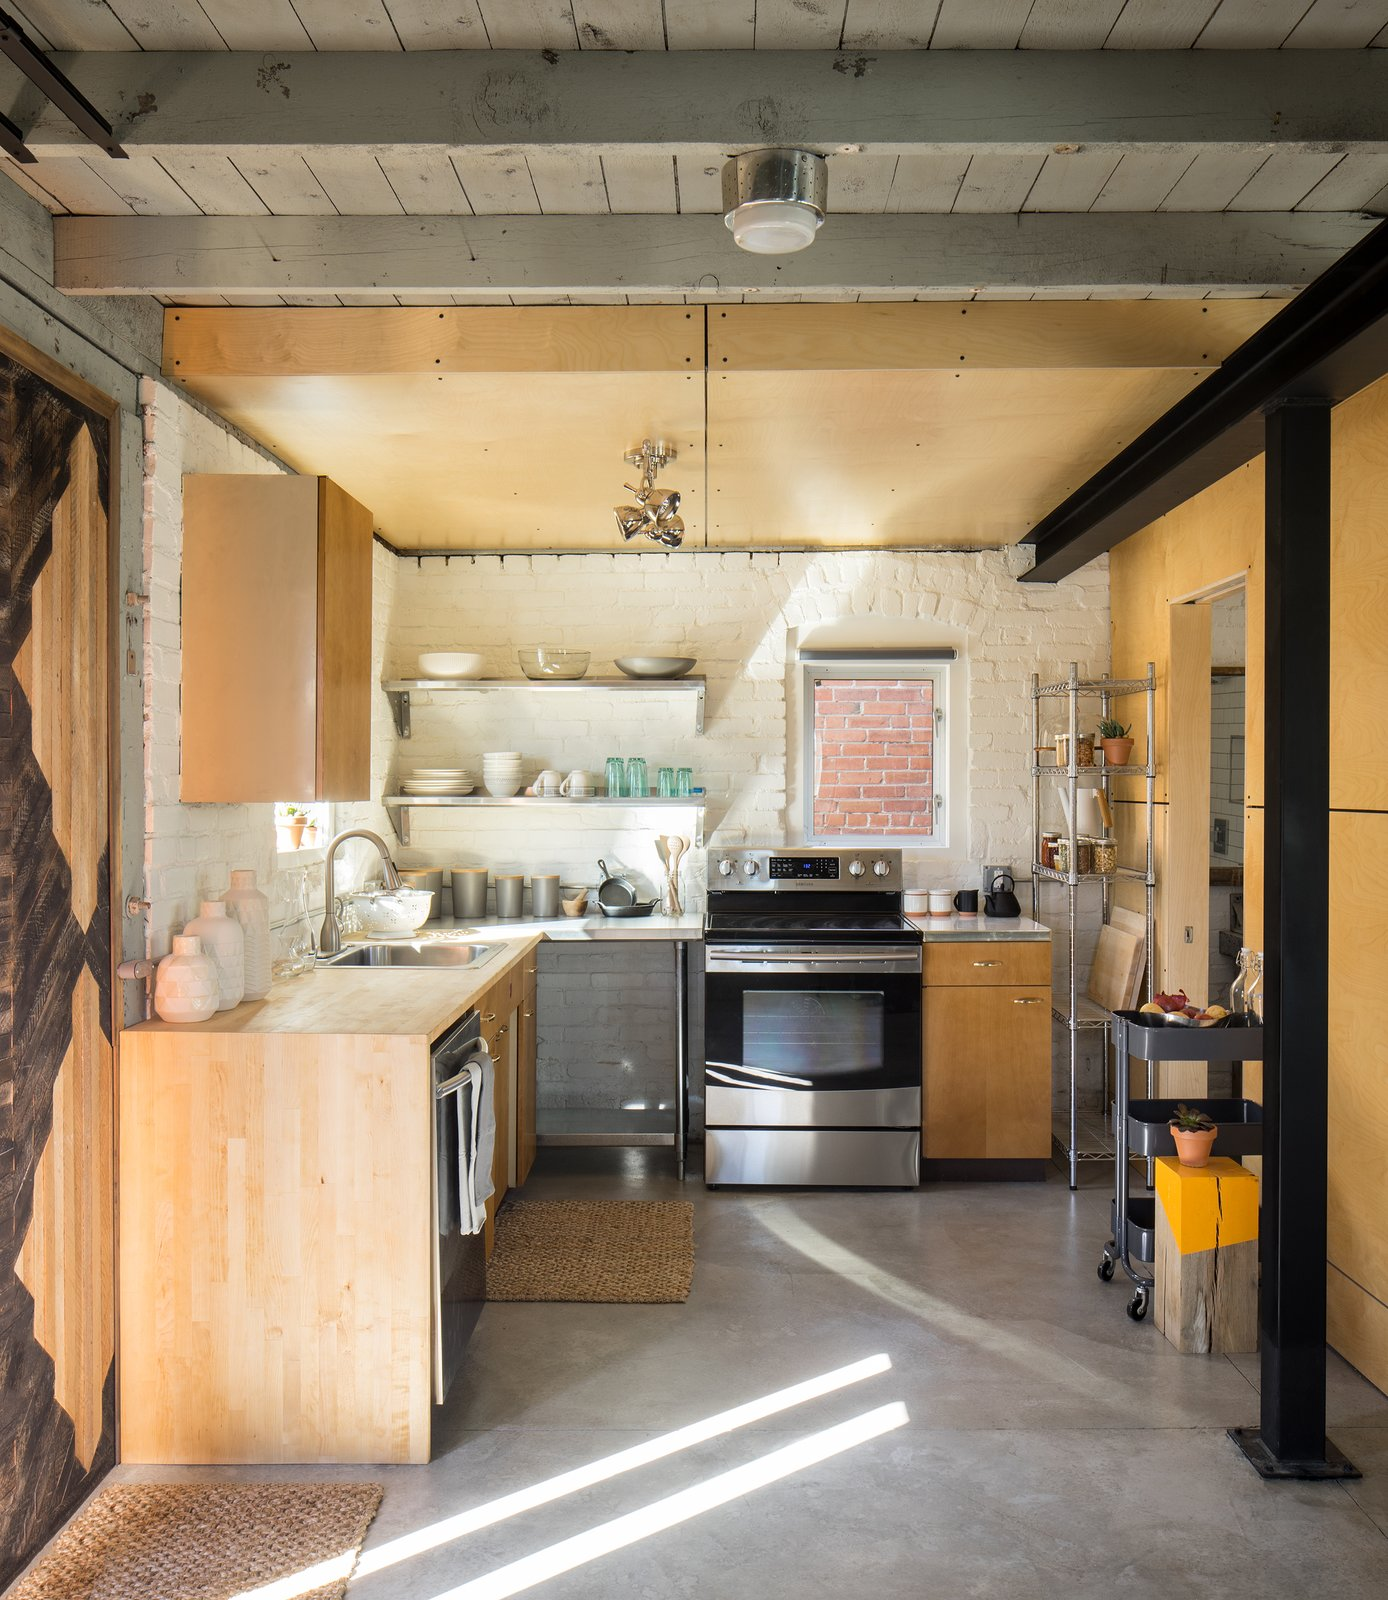 Kitchen, Wood, Metal, Concrete, Brick, Ceiling, Range, Dishwasher, and Drop In Kitchen Area with lath wall panel. Reuse of kitchen cabinets from a 1950's ranch home. Baltic birch wall and ceiling panels.   Best Kitchen Drop In Metal Dishwasher Wood Photos from Blacksmith Shop